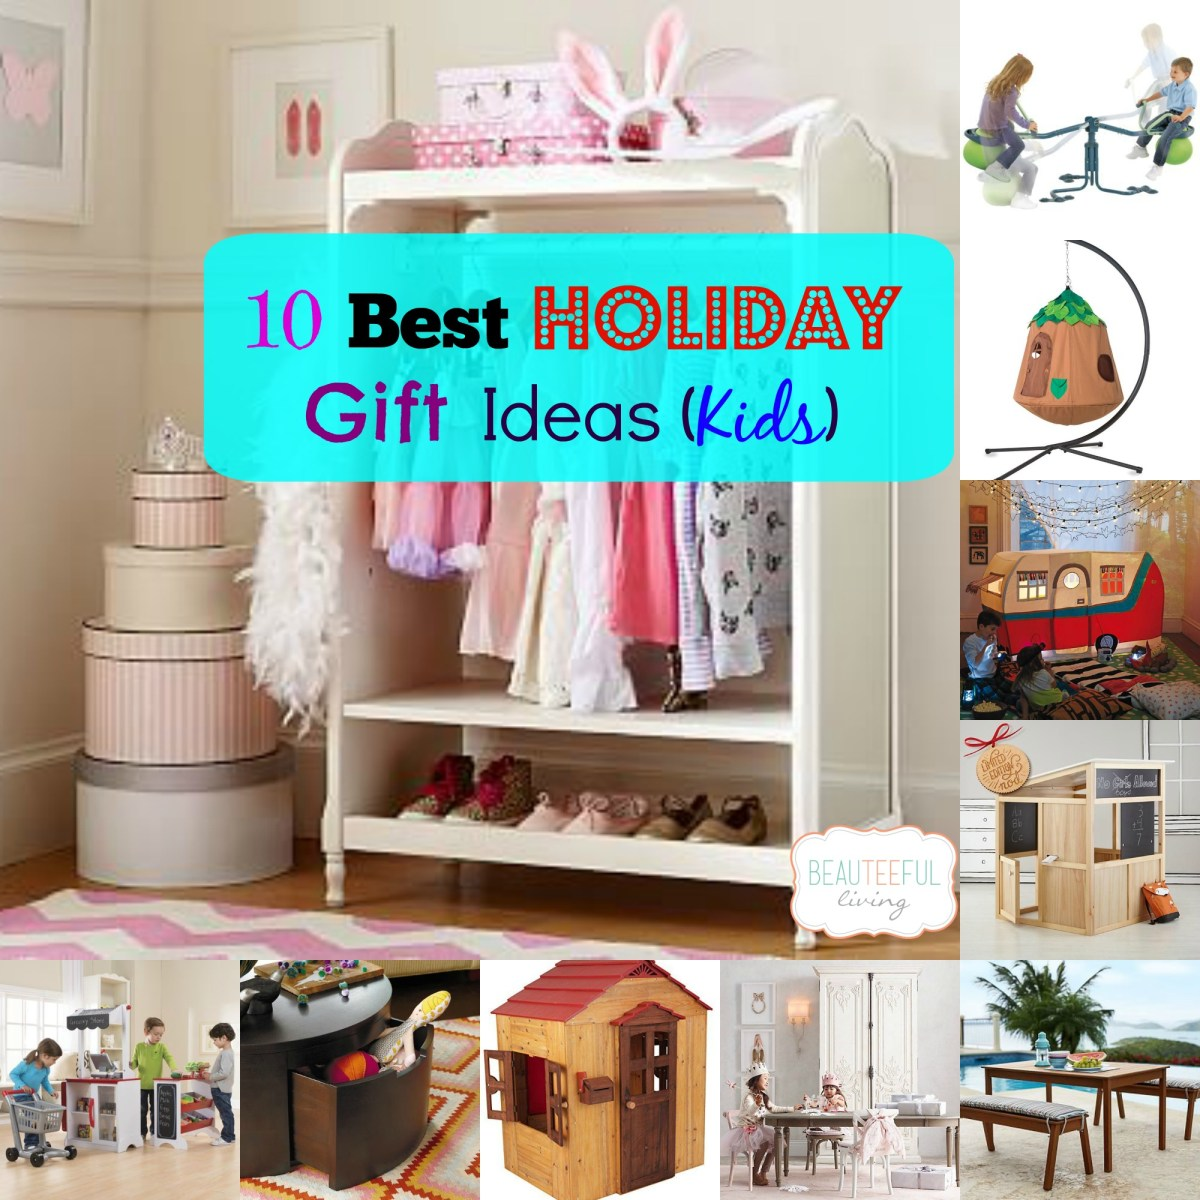 10 Best Holiday Gifts for Kids